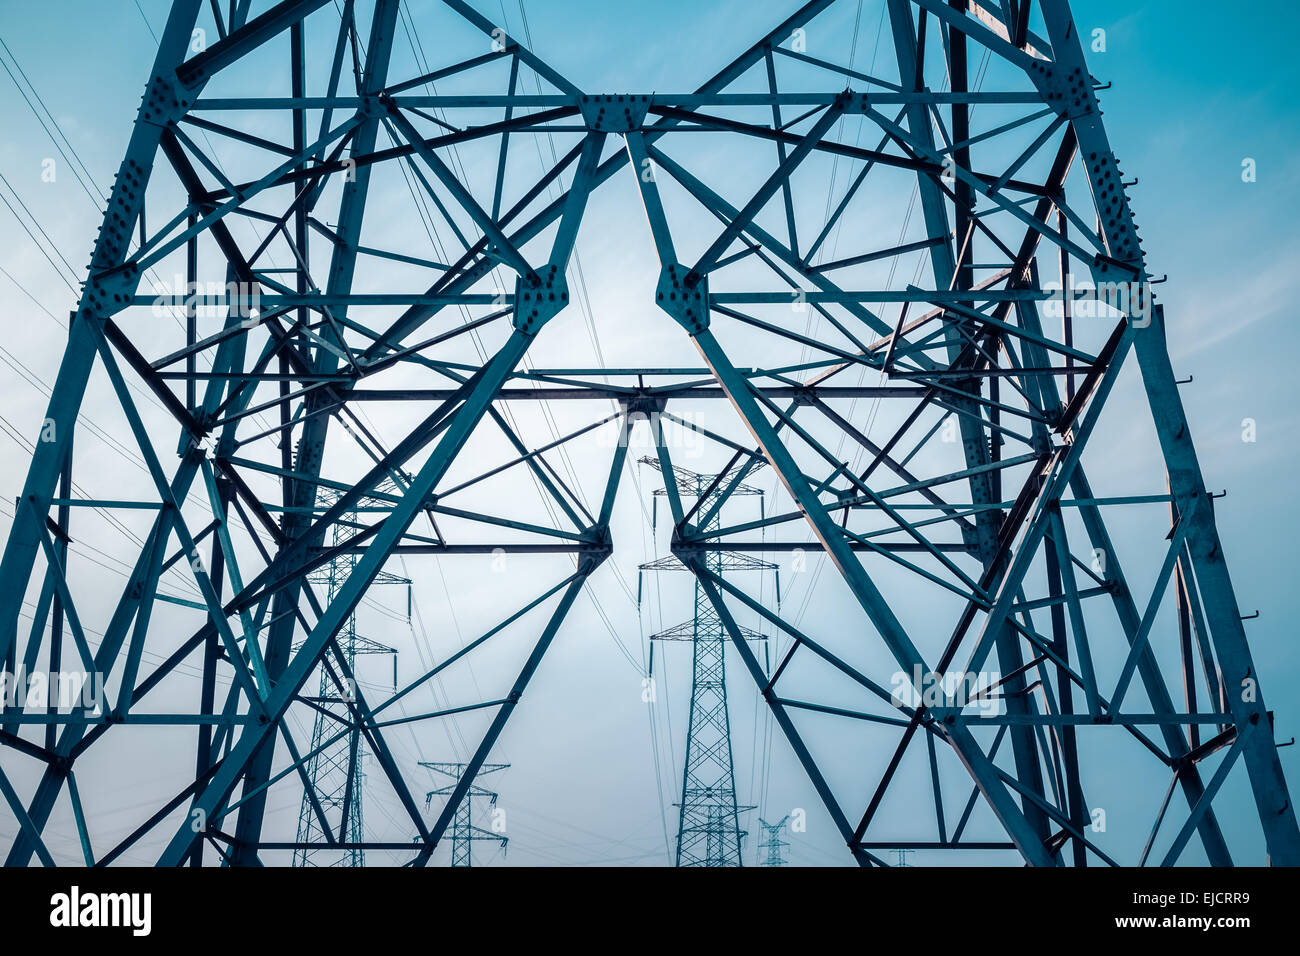 electricity transmission pylon silhouetted - Stock Image